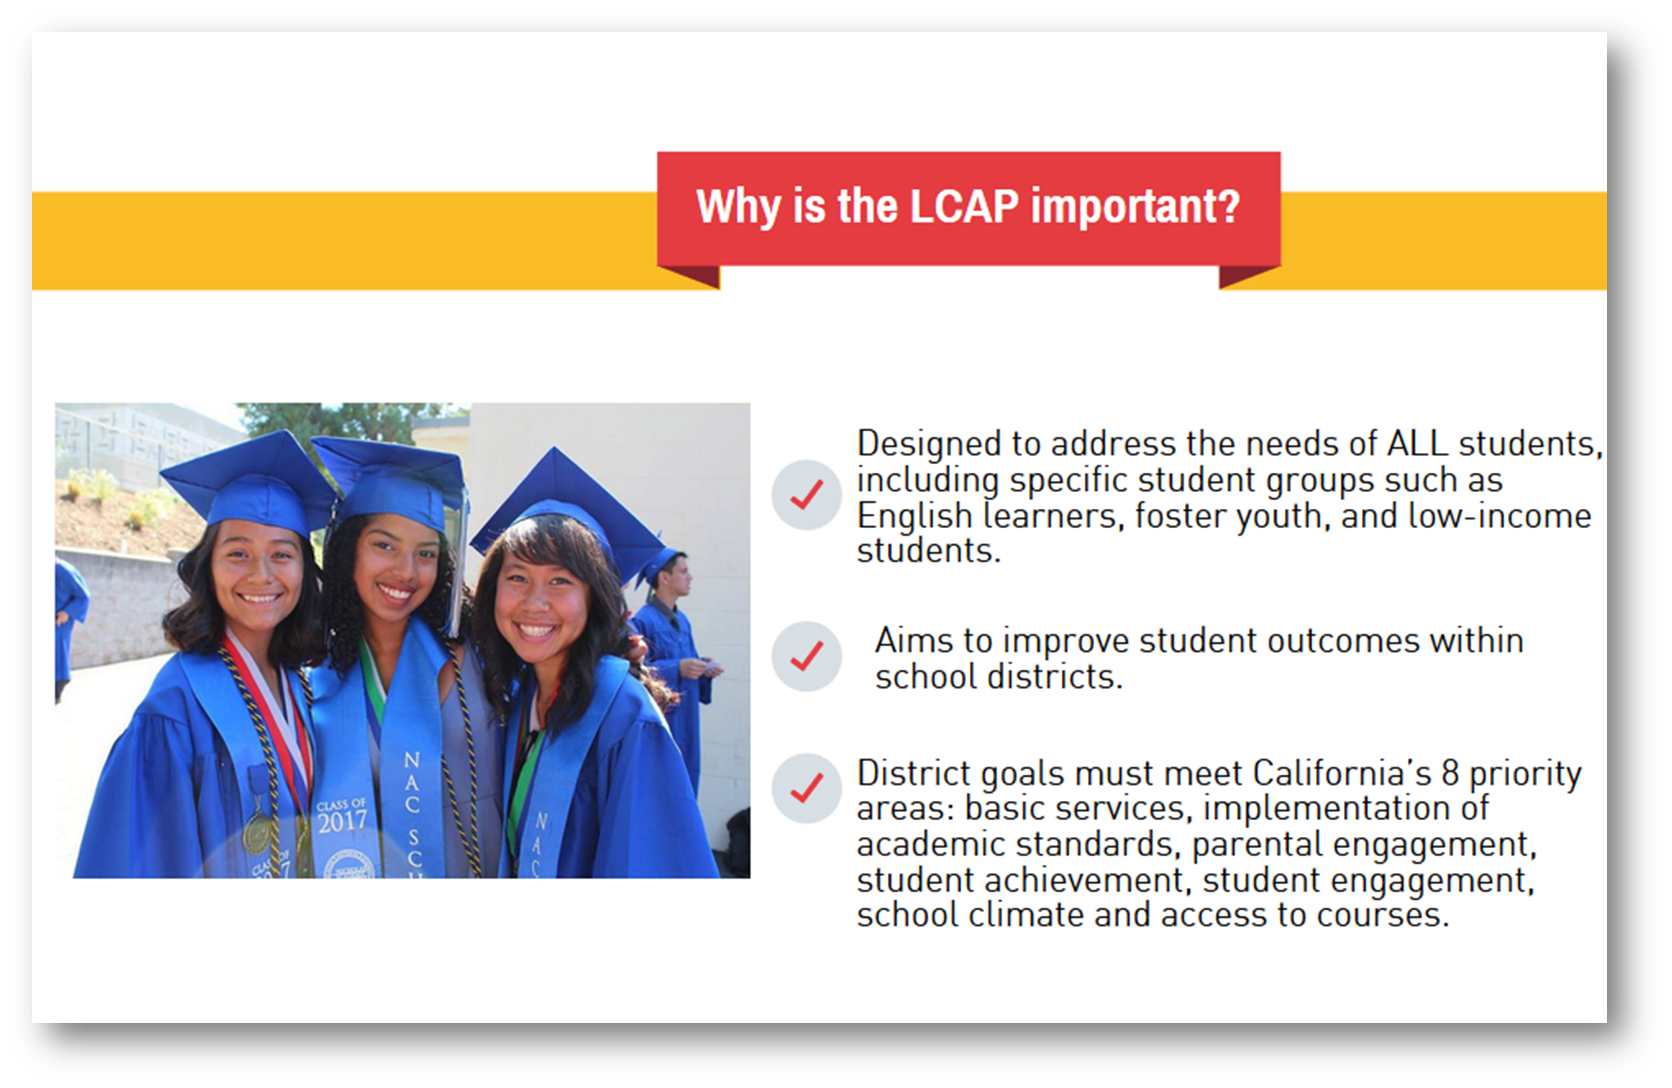 Why is the LCAP important?